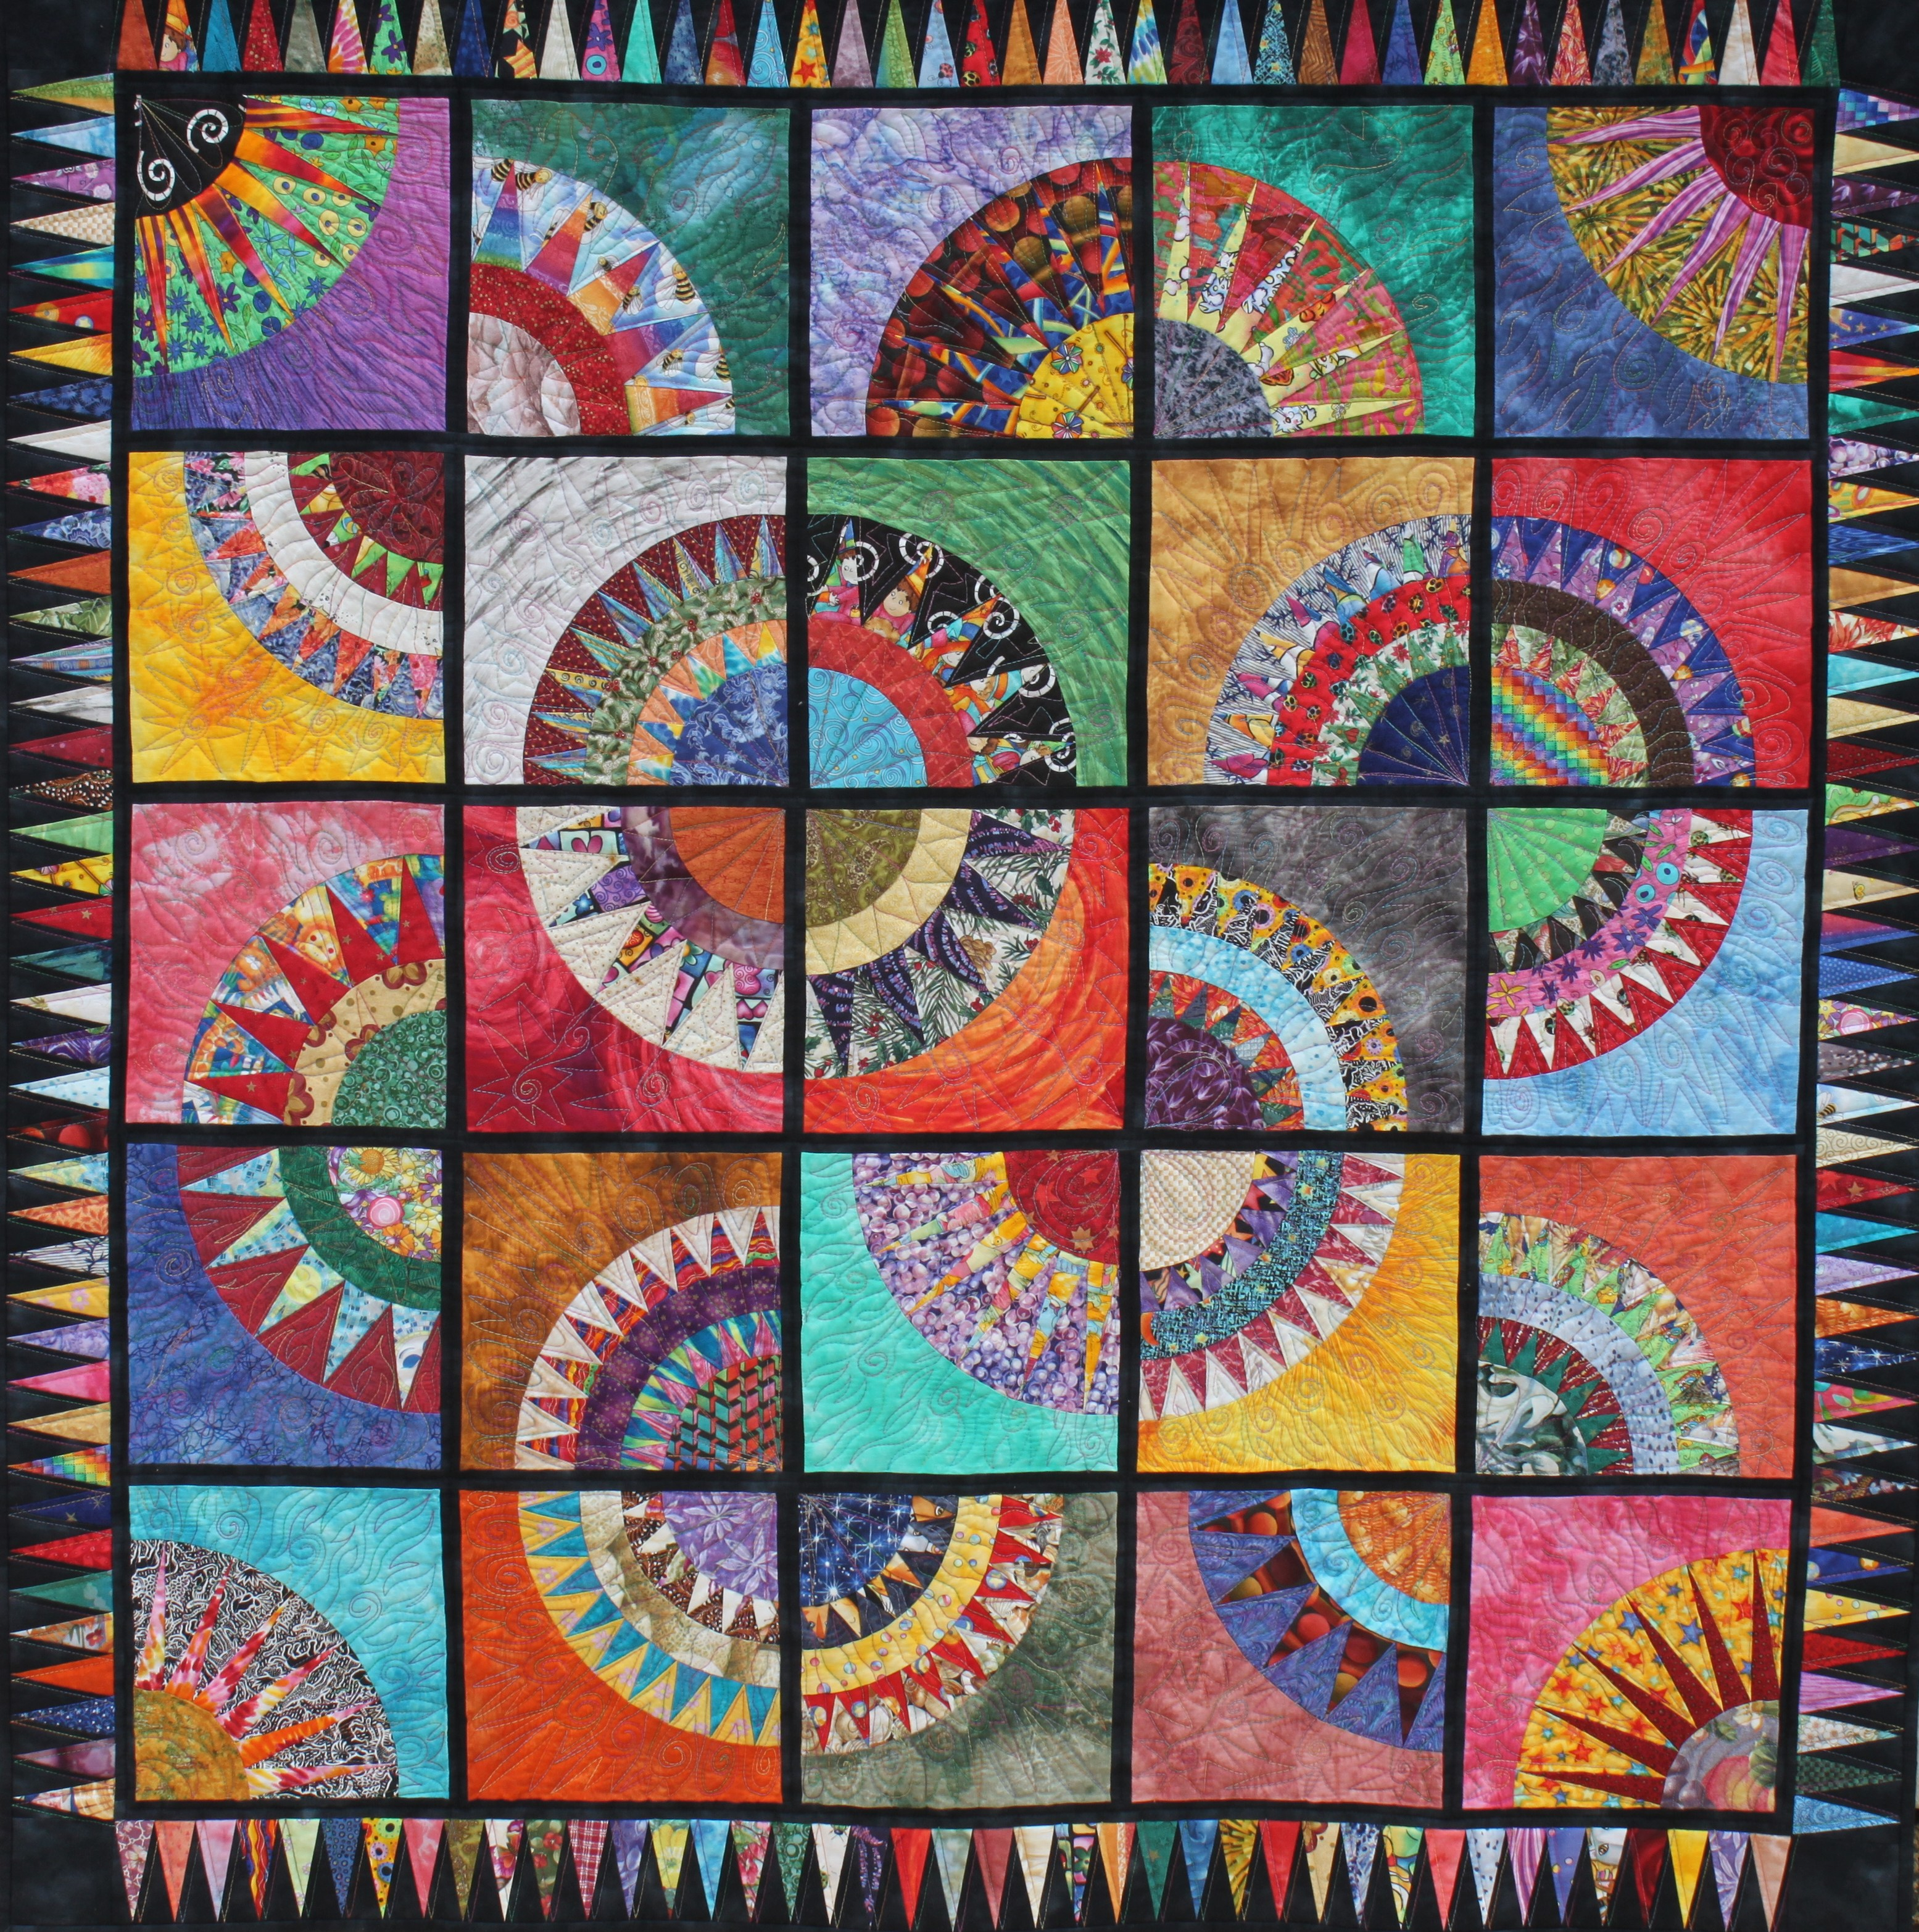 May Gene. Sue Cameron & May-Gene Terblanche. Quilters